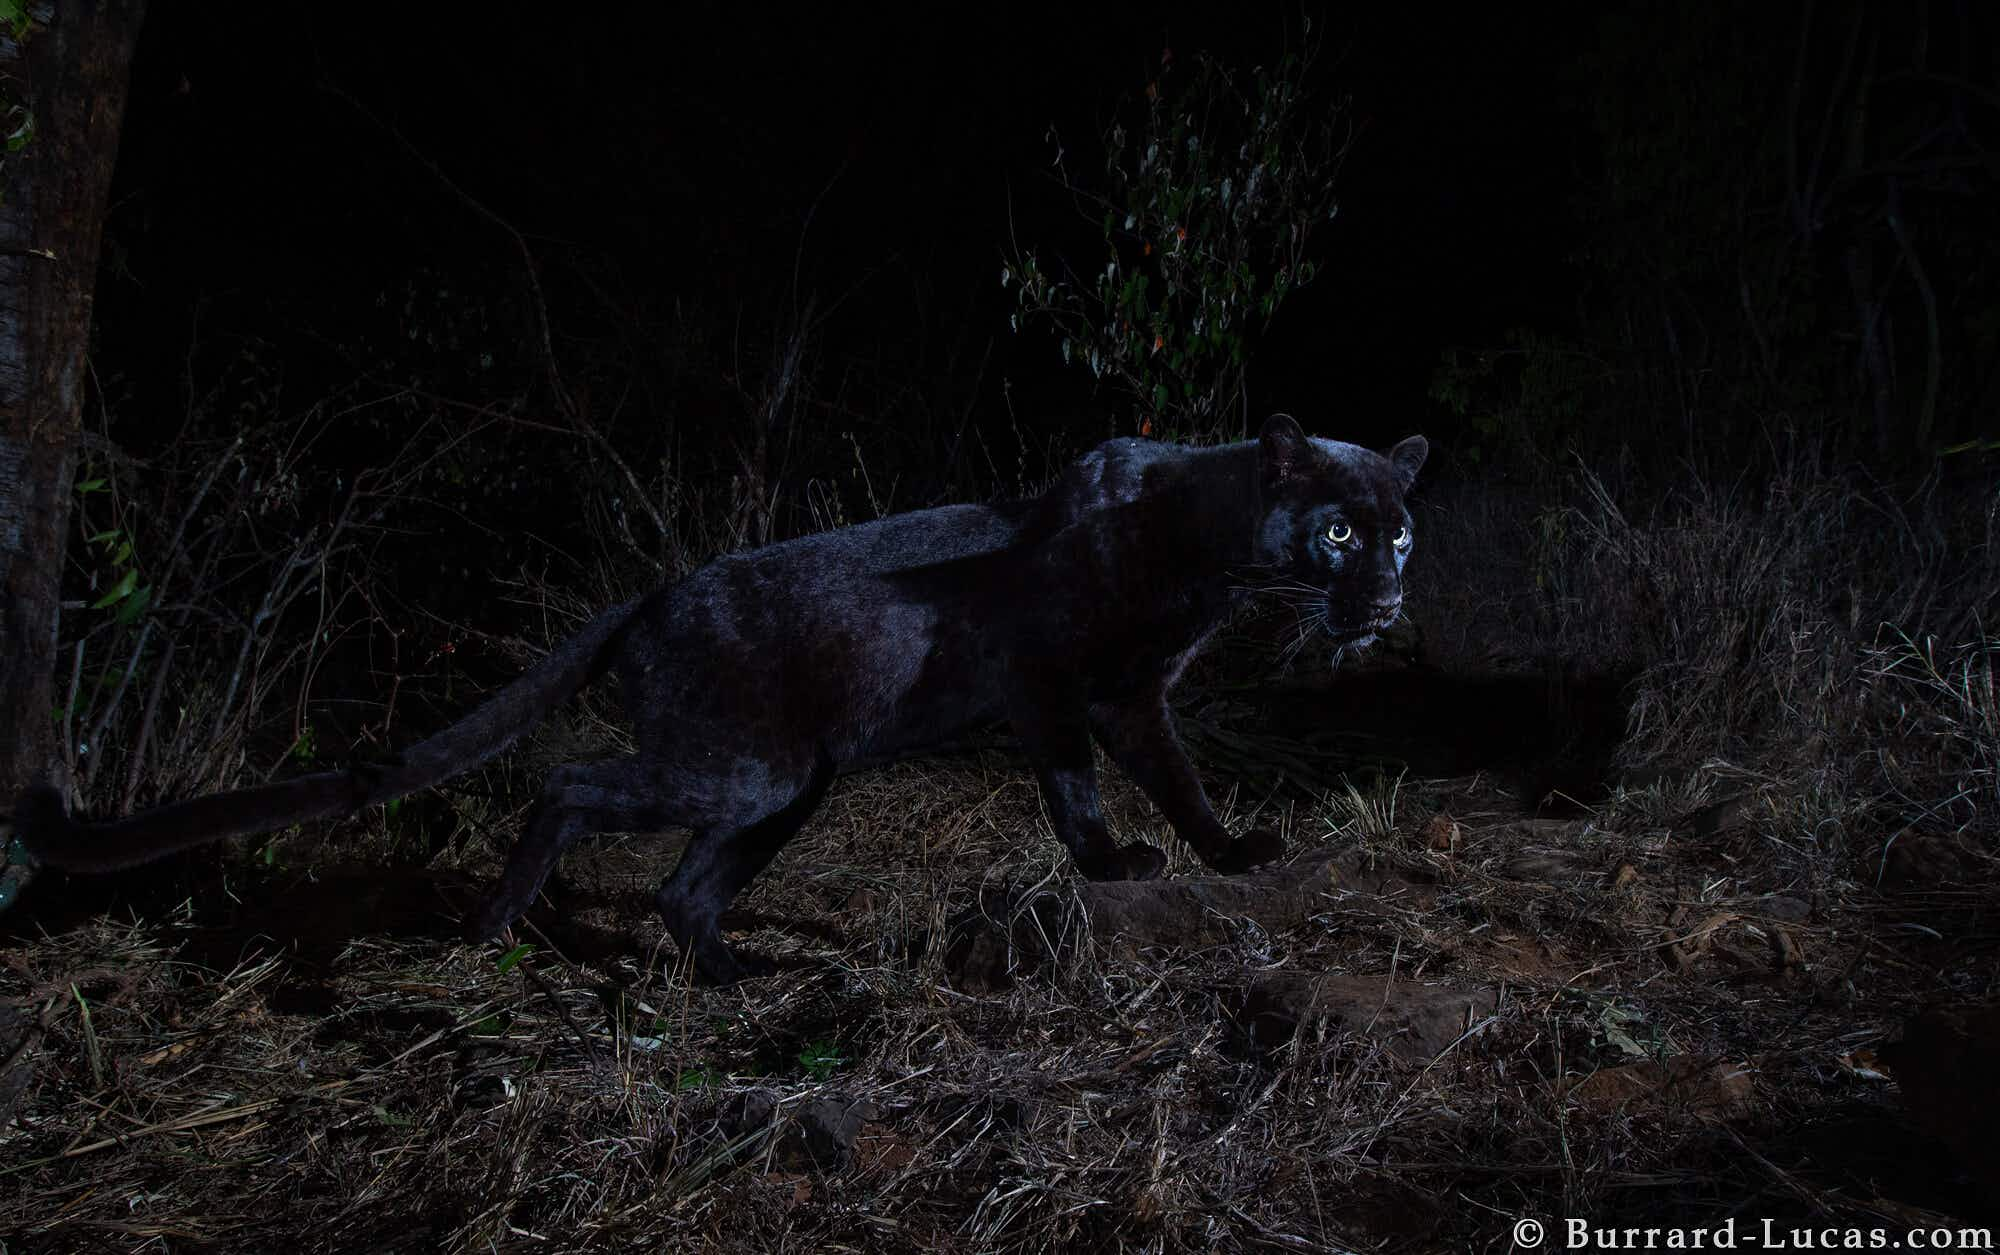 Africa's black leopard has been photographed perfectly for the first time